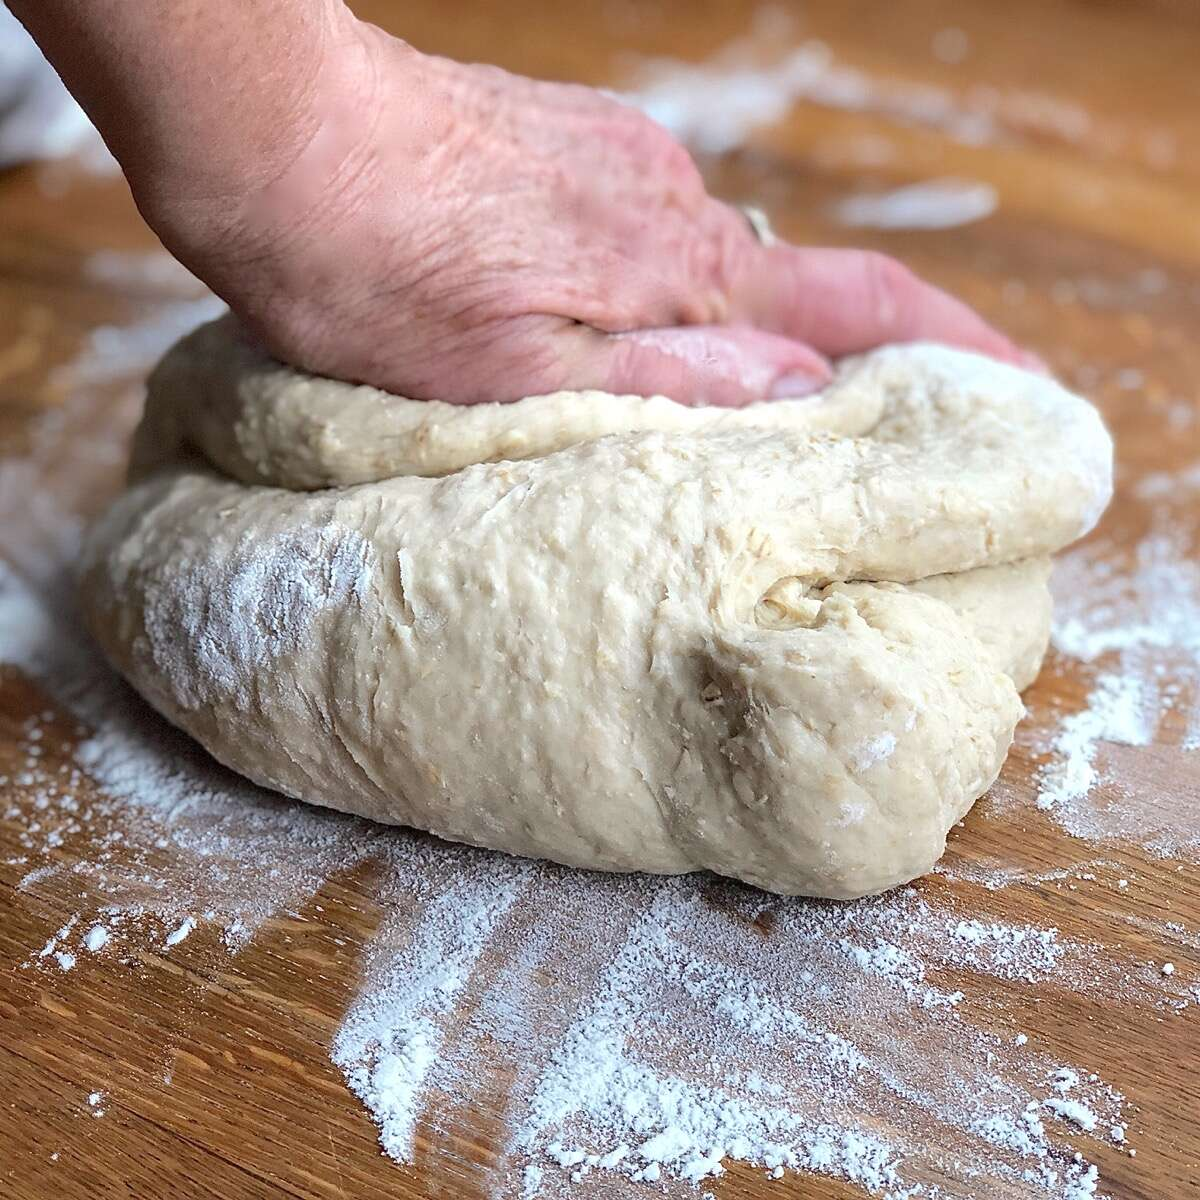 Hand-kneading oatmeal bread dough on a floured board